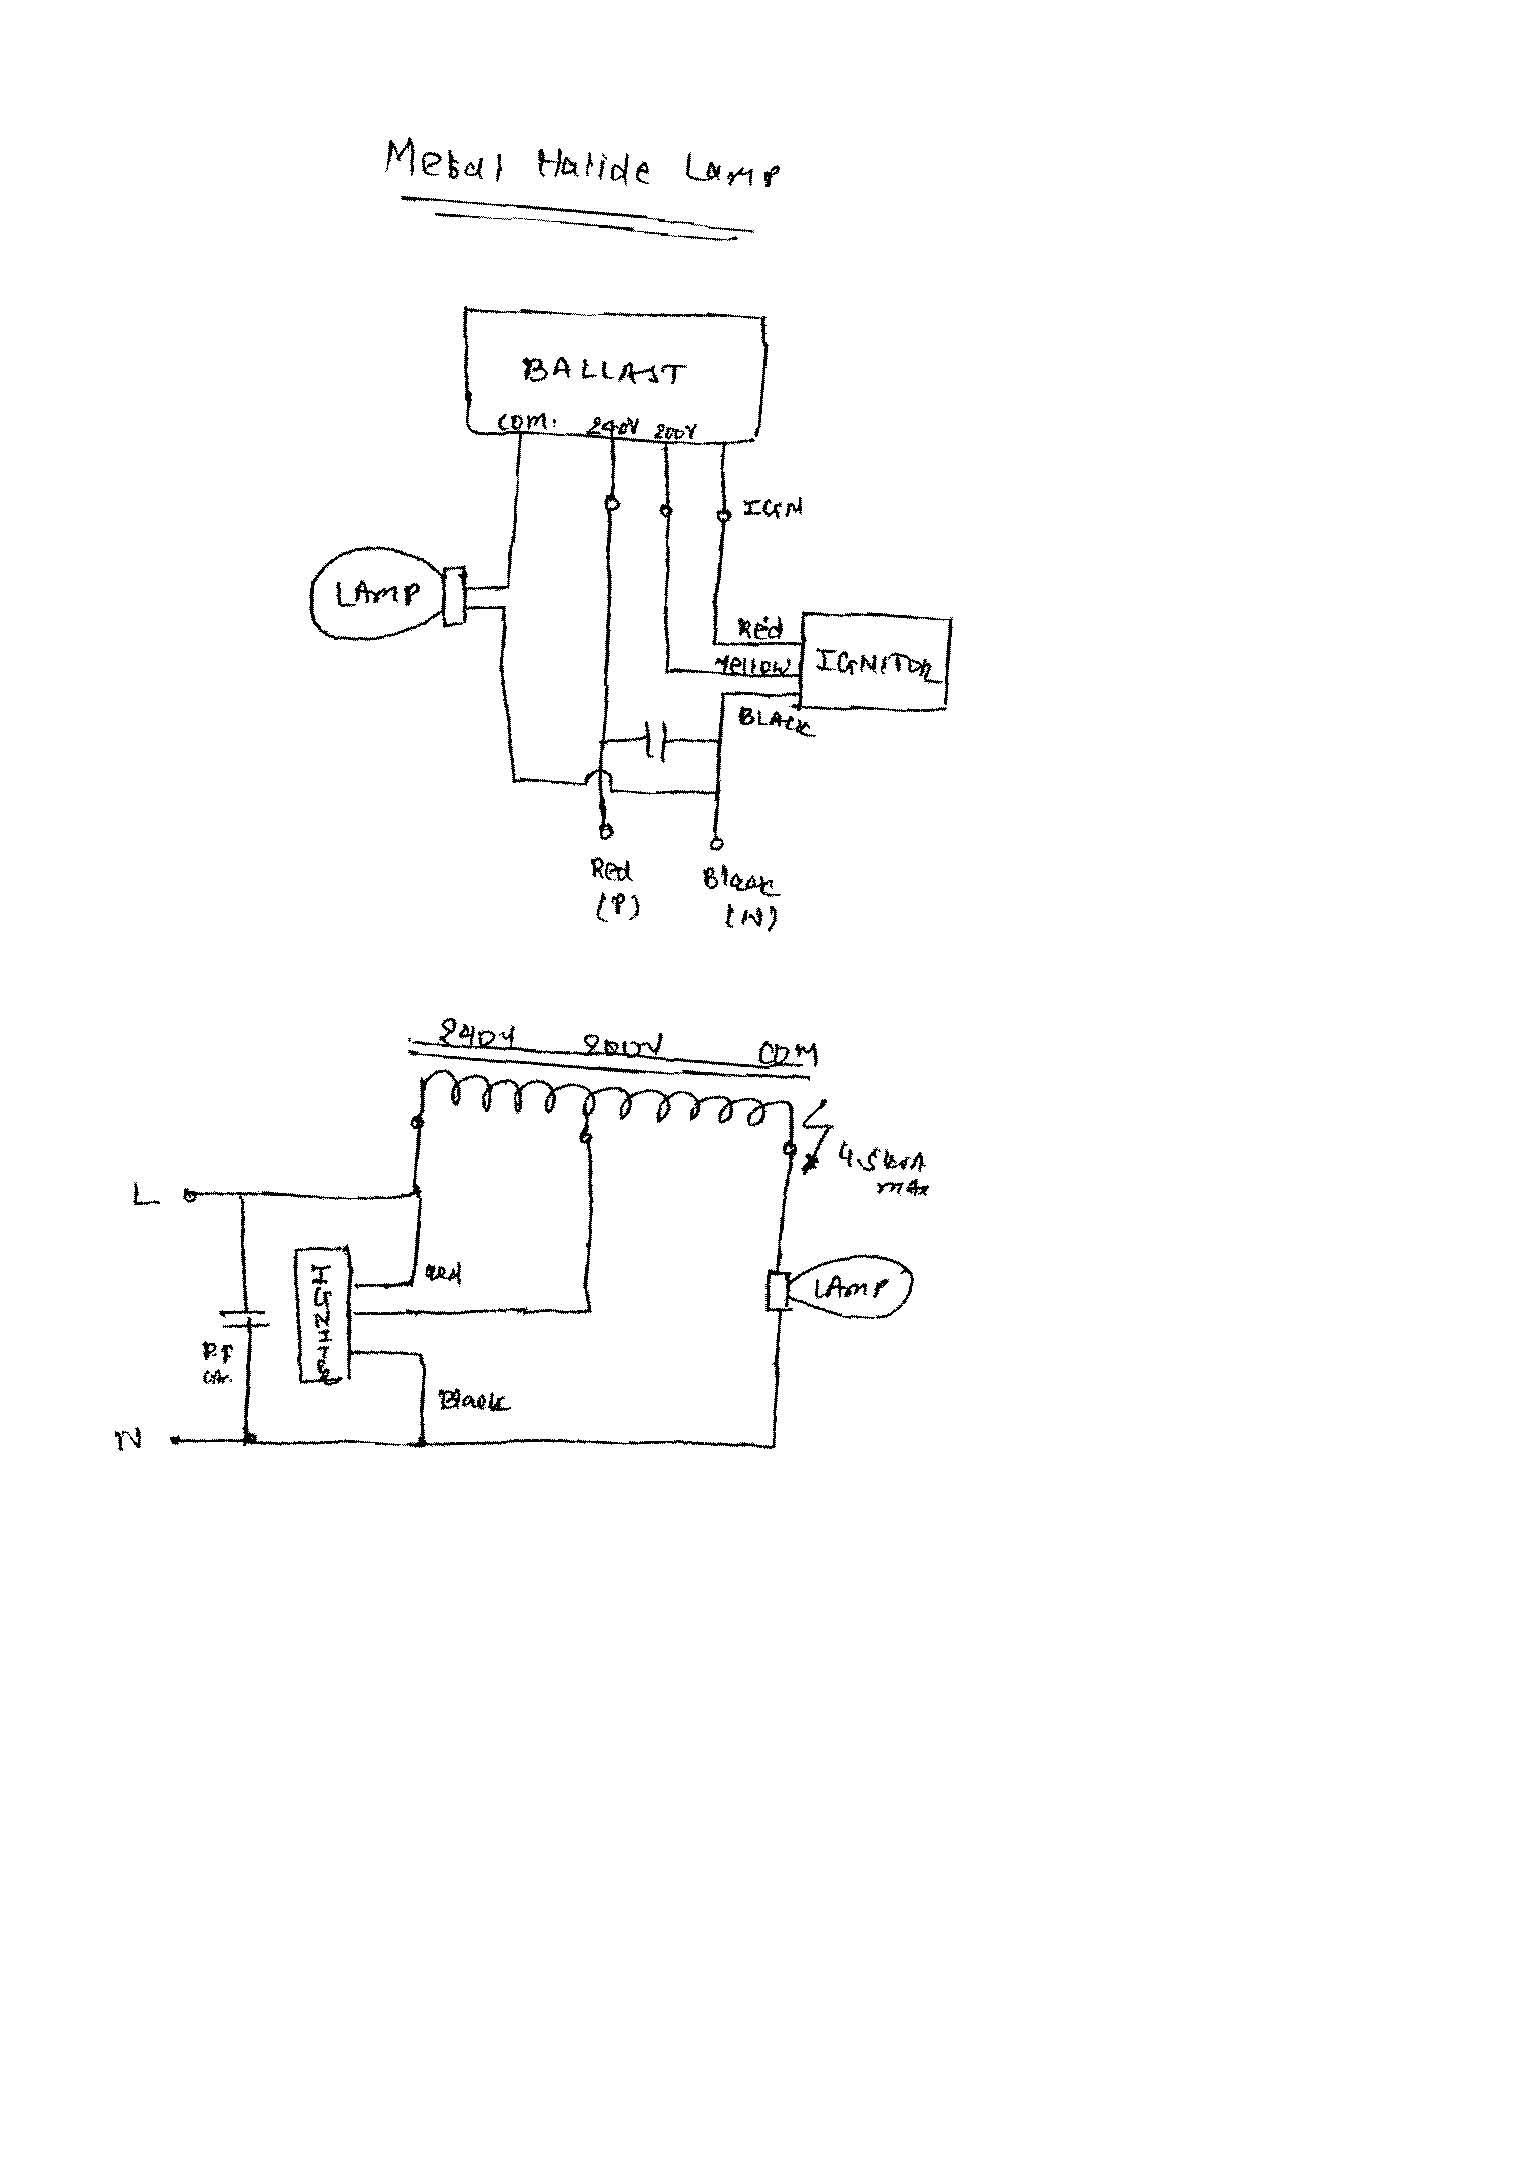 Mh Ballast Wiring Diagram Free Hid For Metal Halide Lights Top Rated High Pressure Sodium